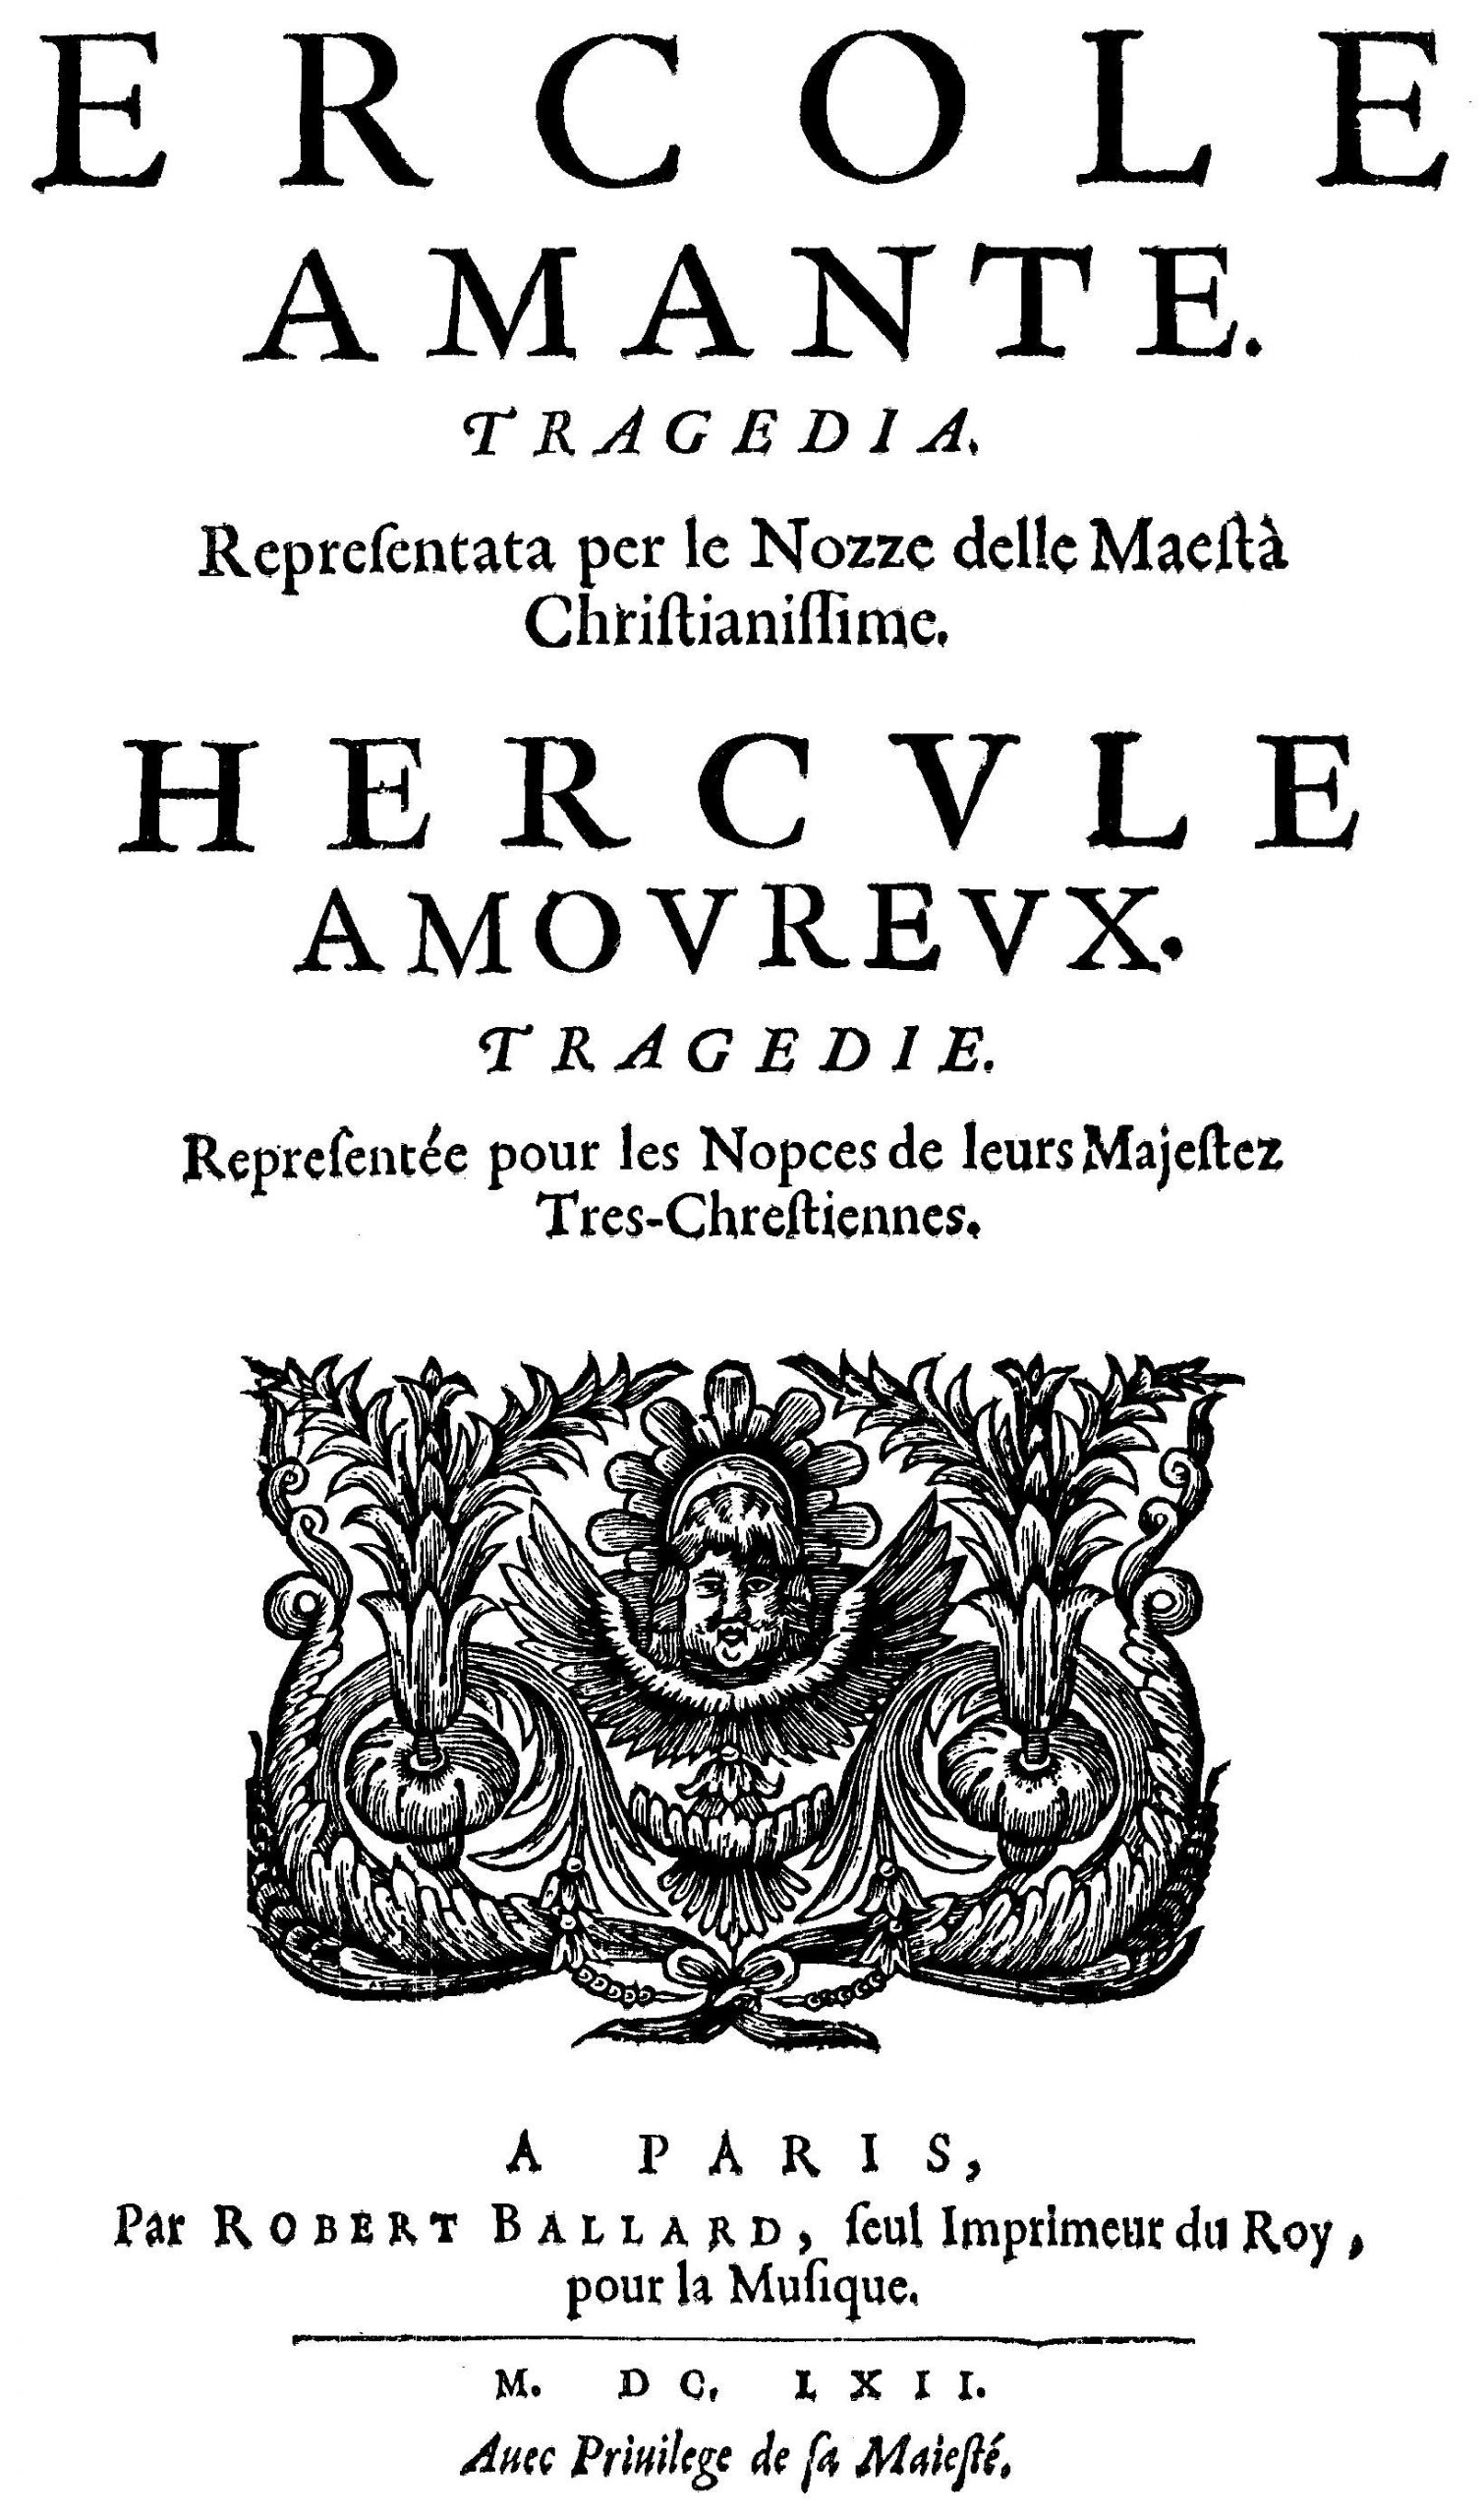 Francesco Cavalli Ercole amante title page of the libretto Paris 1662